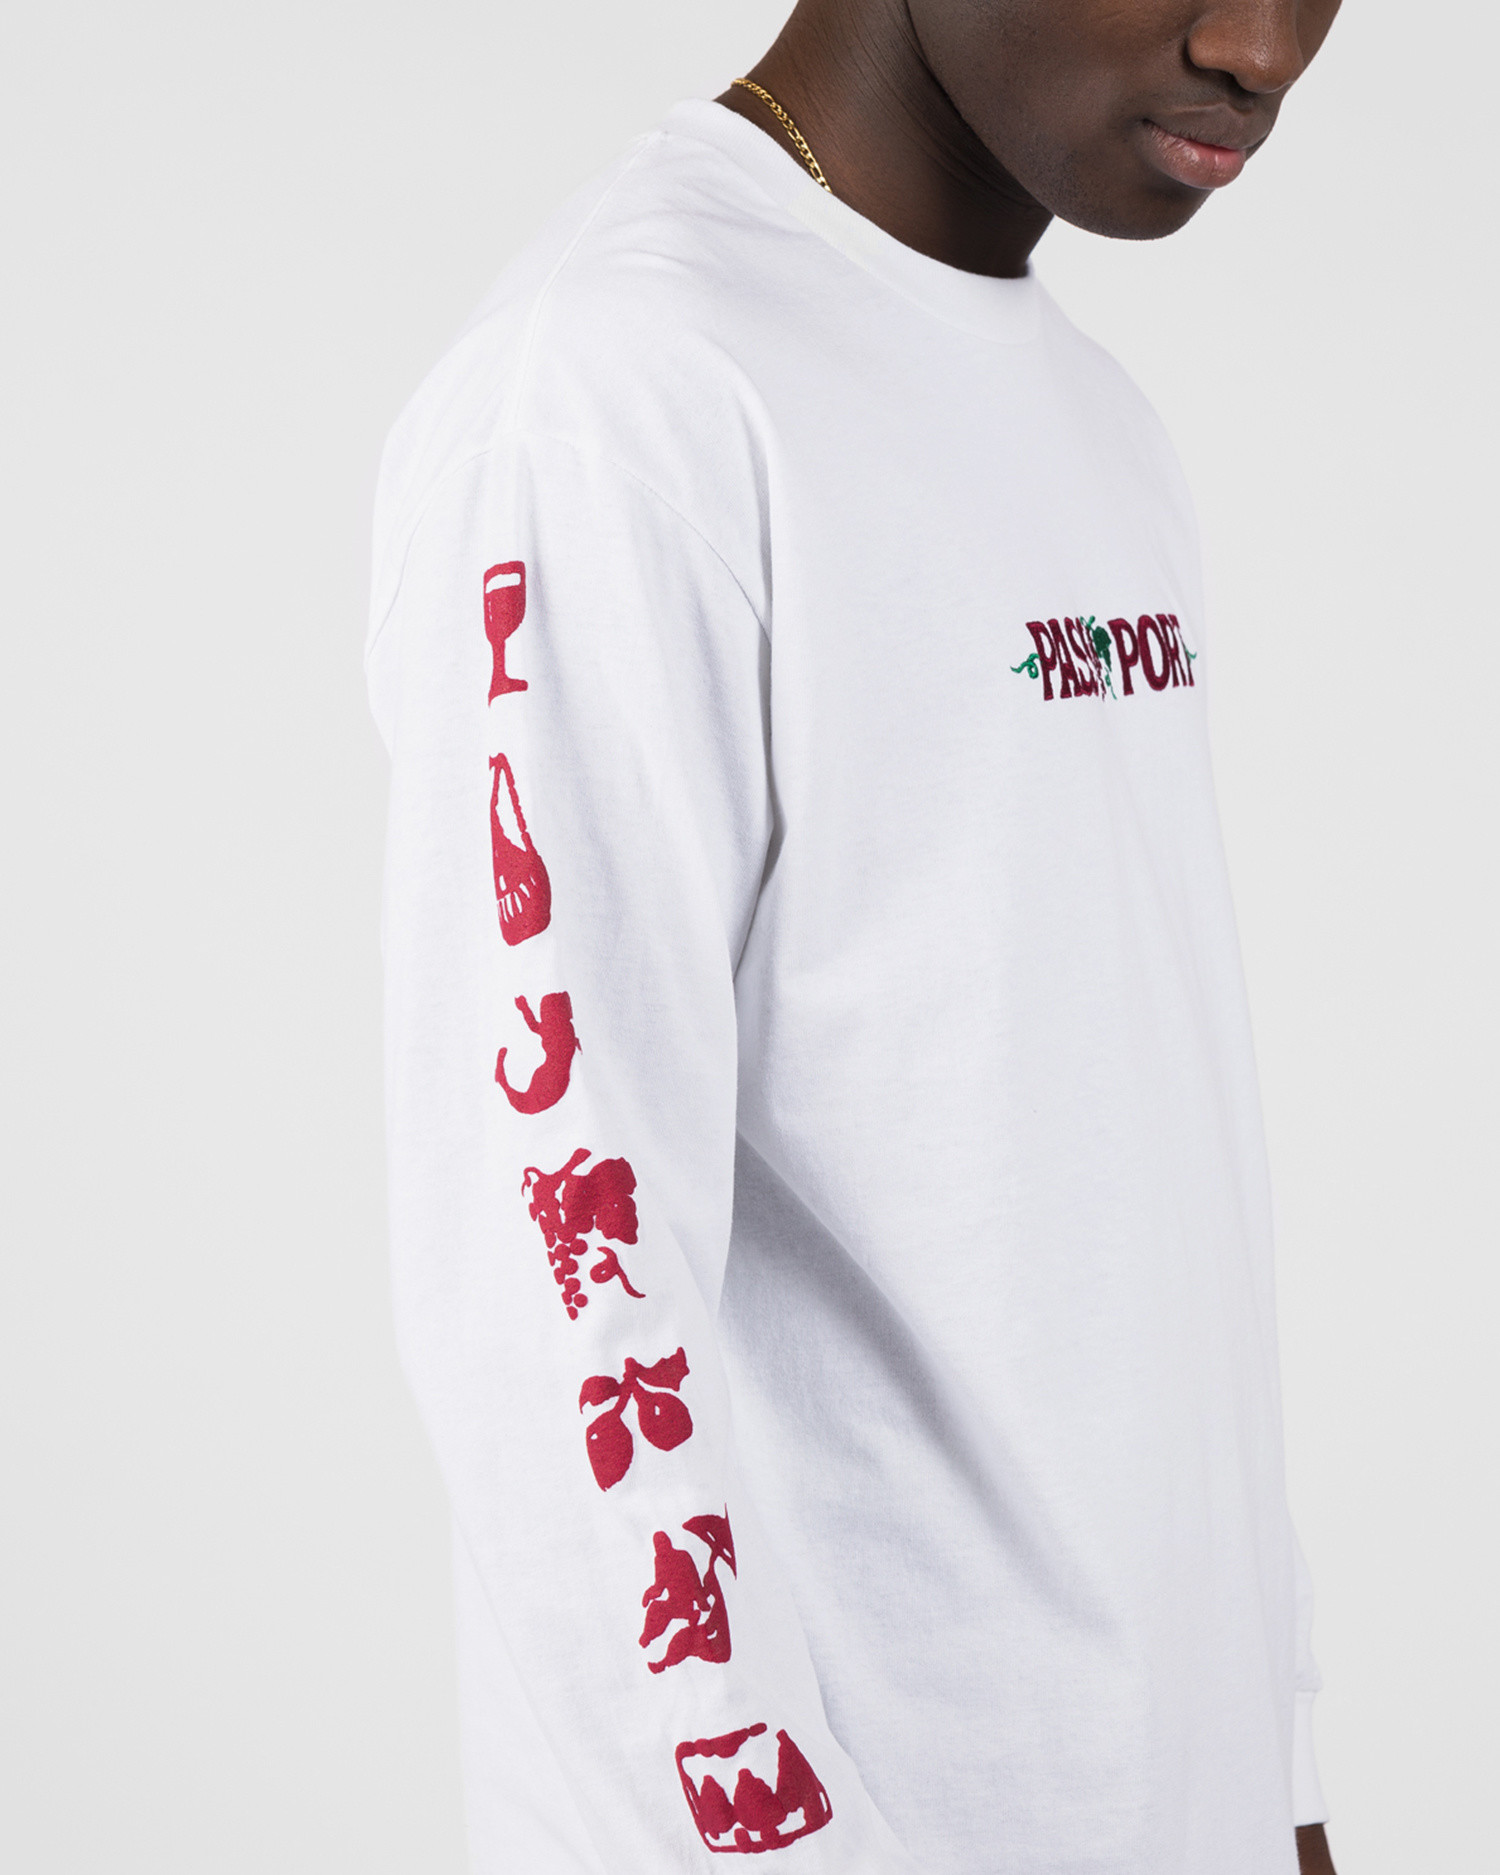 Passport Life Of Leisure Embroidery Tee Longsleeve White